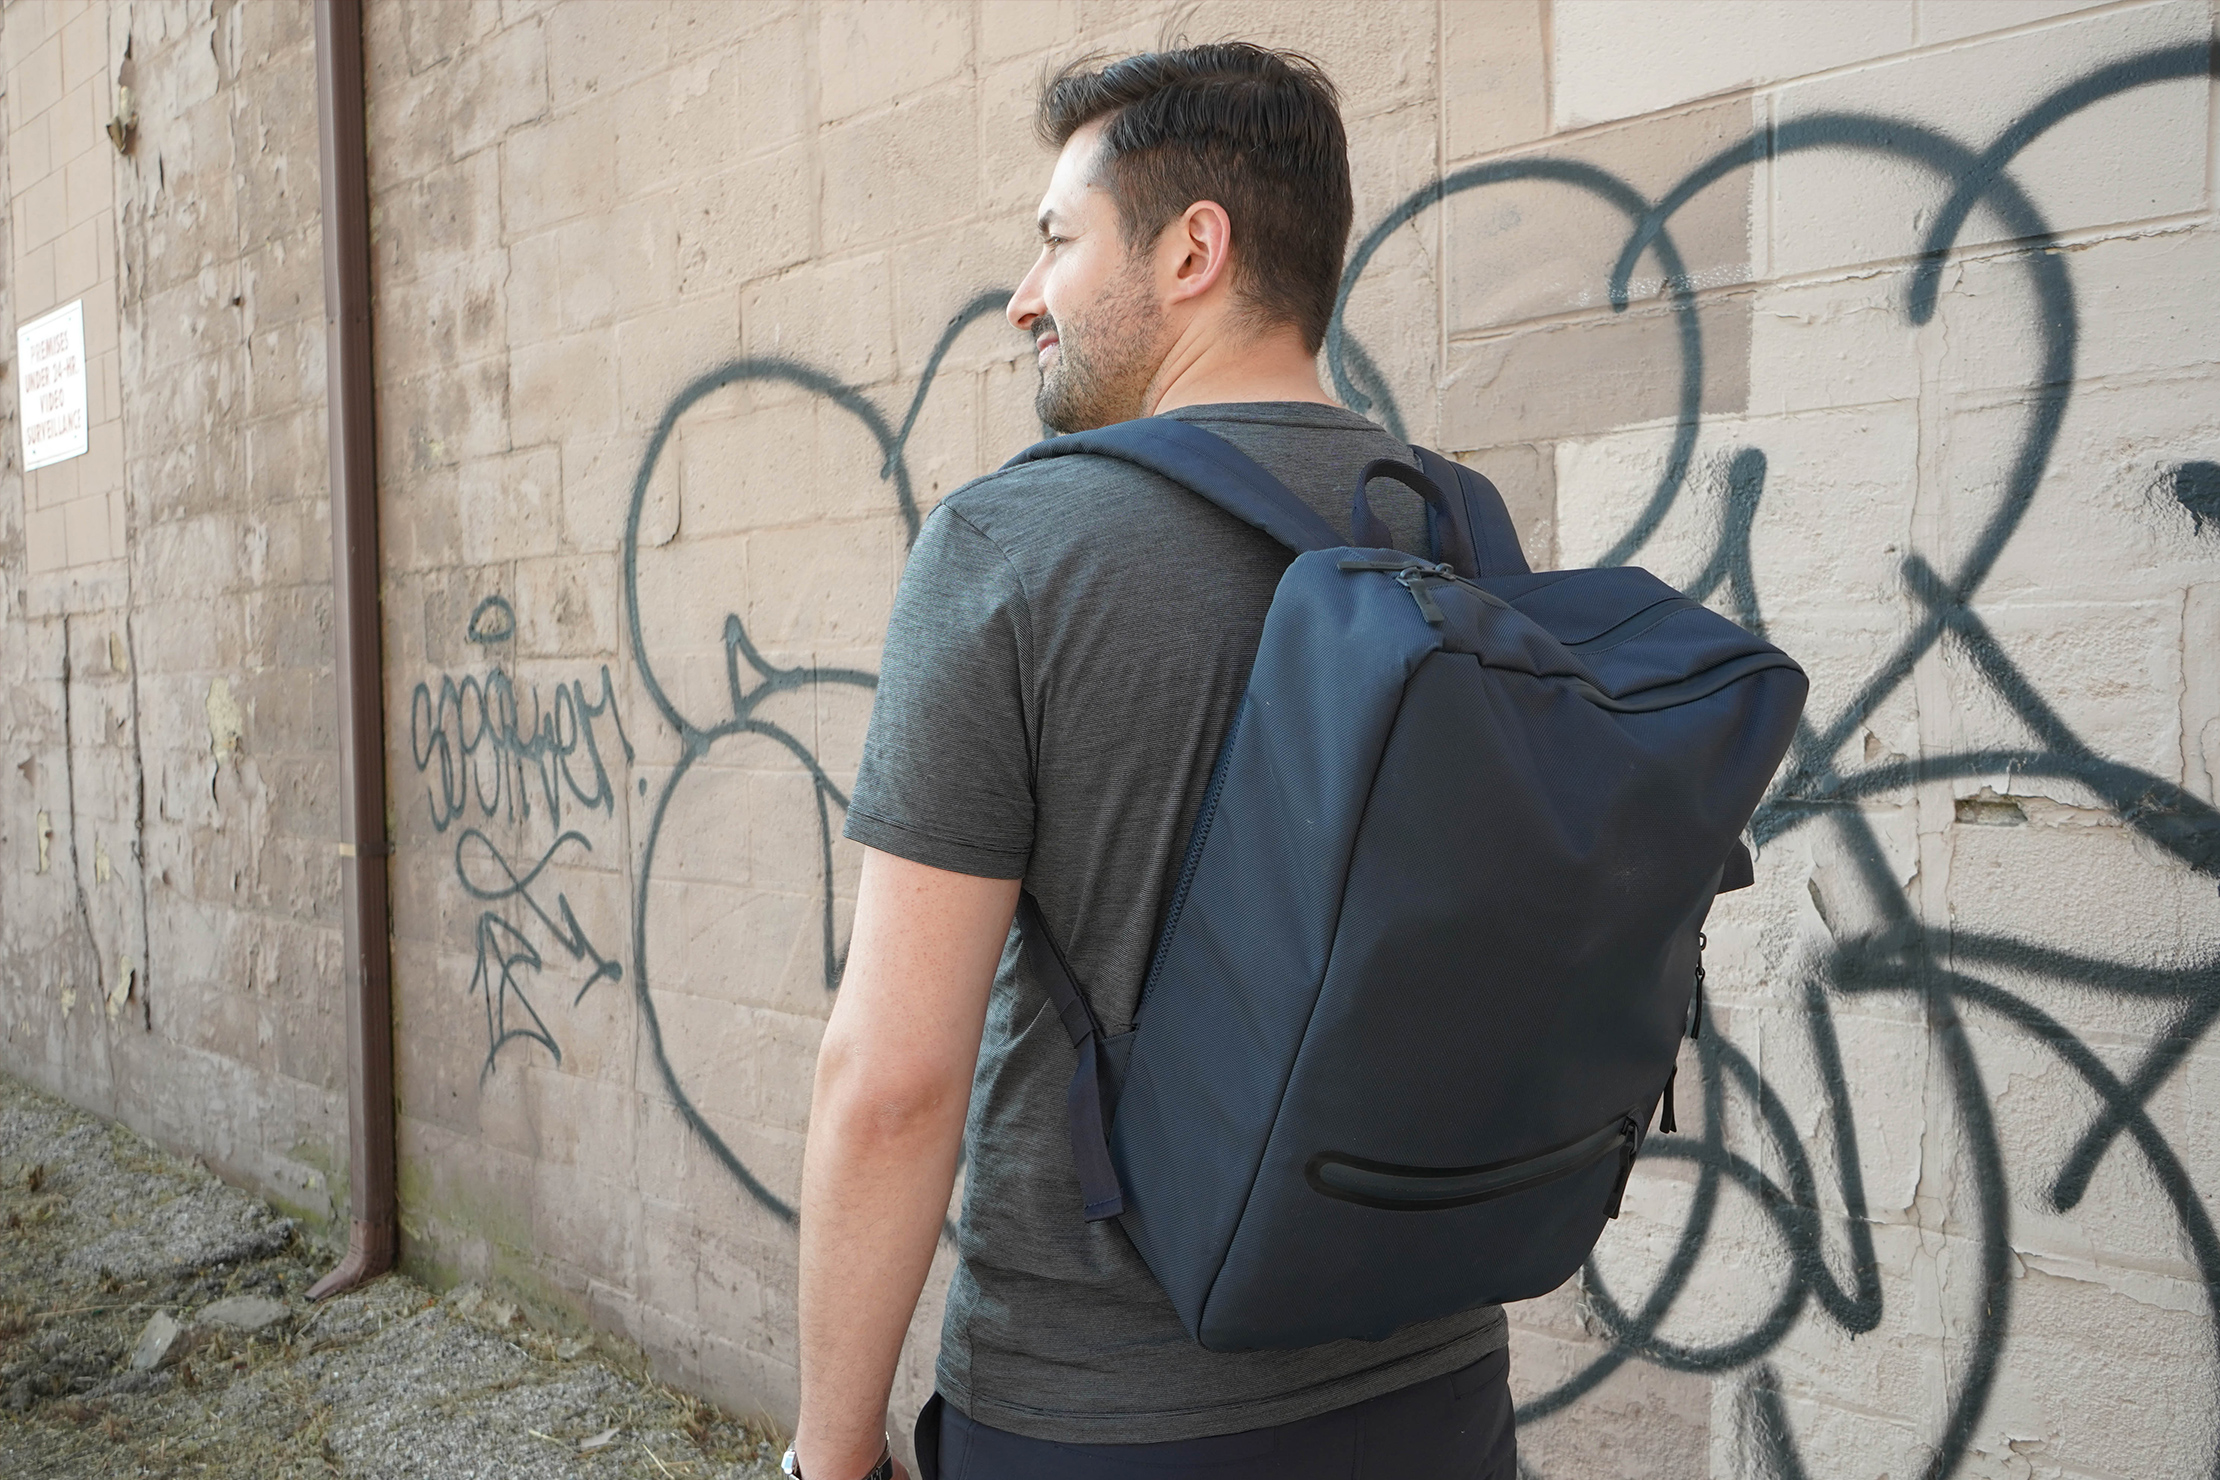 Uniqlo 3 Way Bag Review (budget friendly) | Pack Hacker